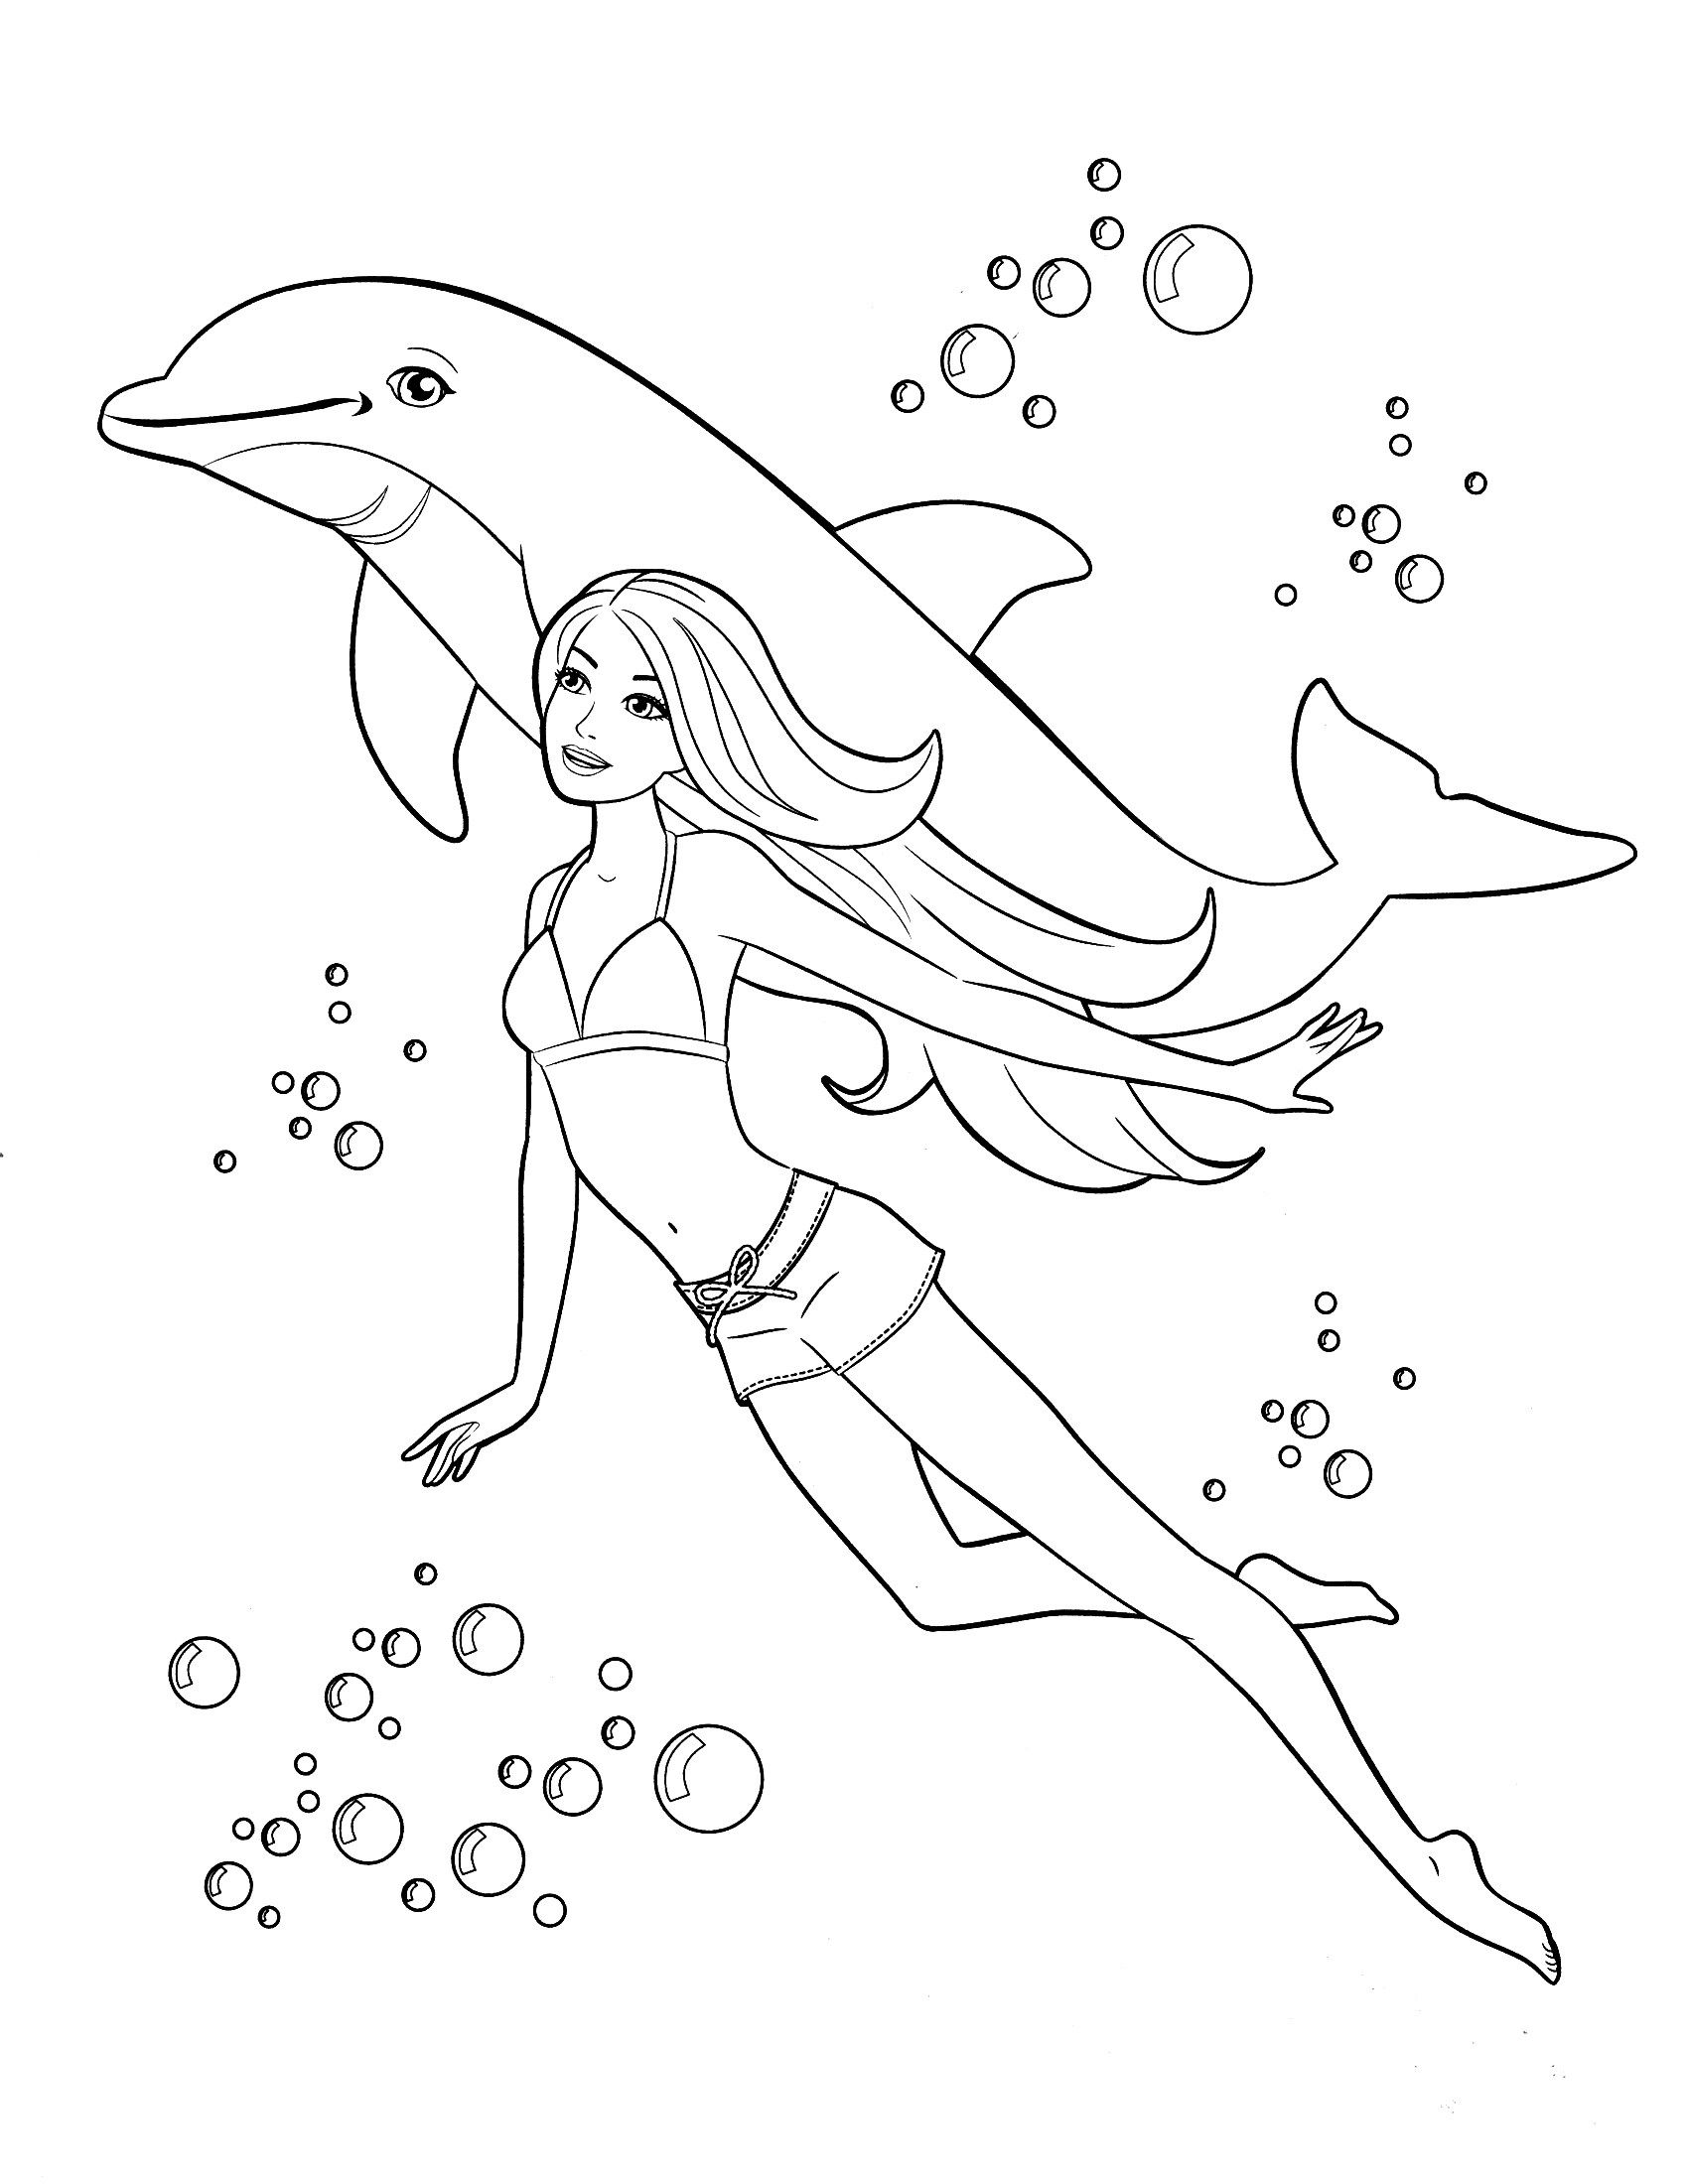 25 Great Photo Of Barbie Mermaid Coloring Pages Omaľovanky